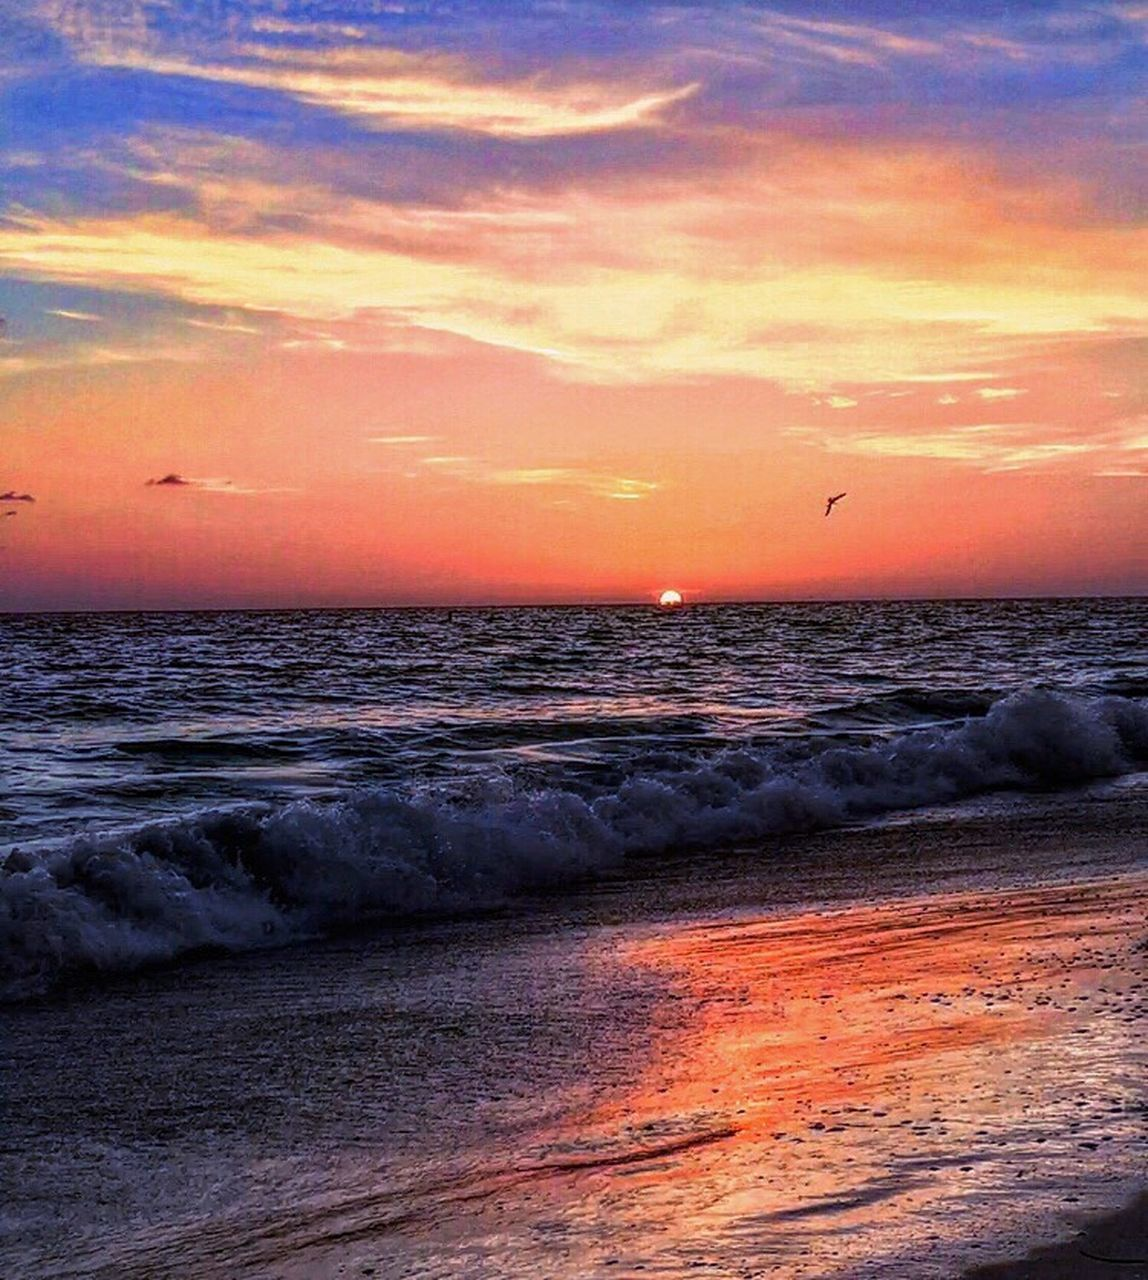 sunset, sea, horizon over water, beauty in nature, scenics, orange color, sky, nature, tranquil scene, cloud - sky, beach, water, tranquility, outdoors, no people, silhouette, wave, sand, bird, animal themes, day